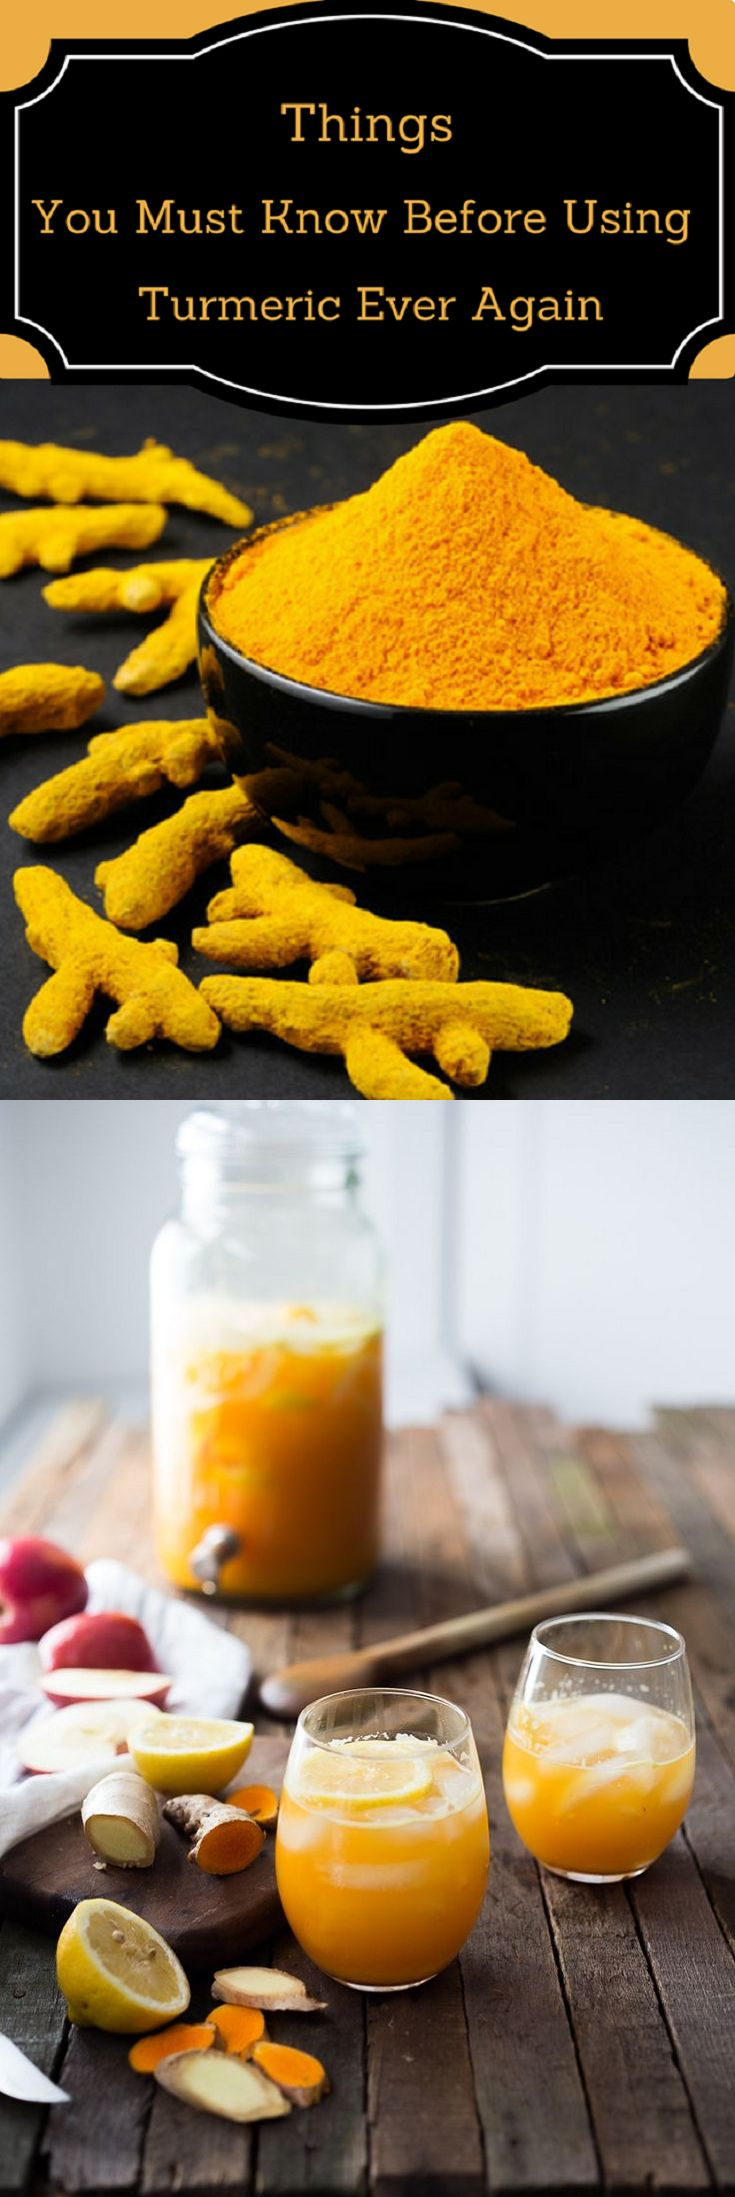 Things You Must Know Before Using Turmeric Ever Again (food tips hacks)